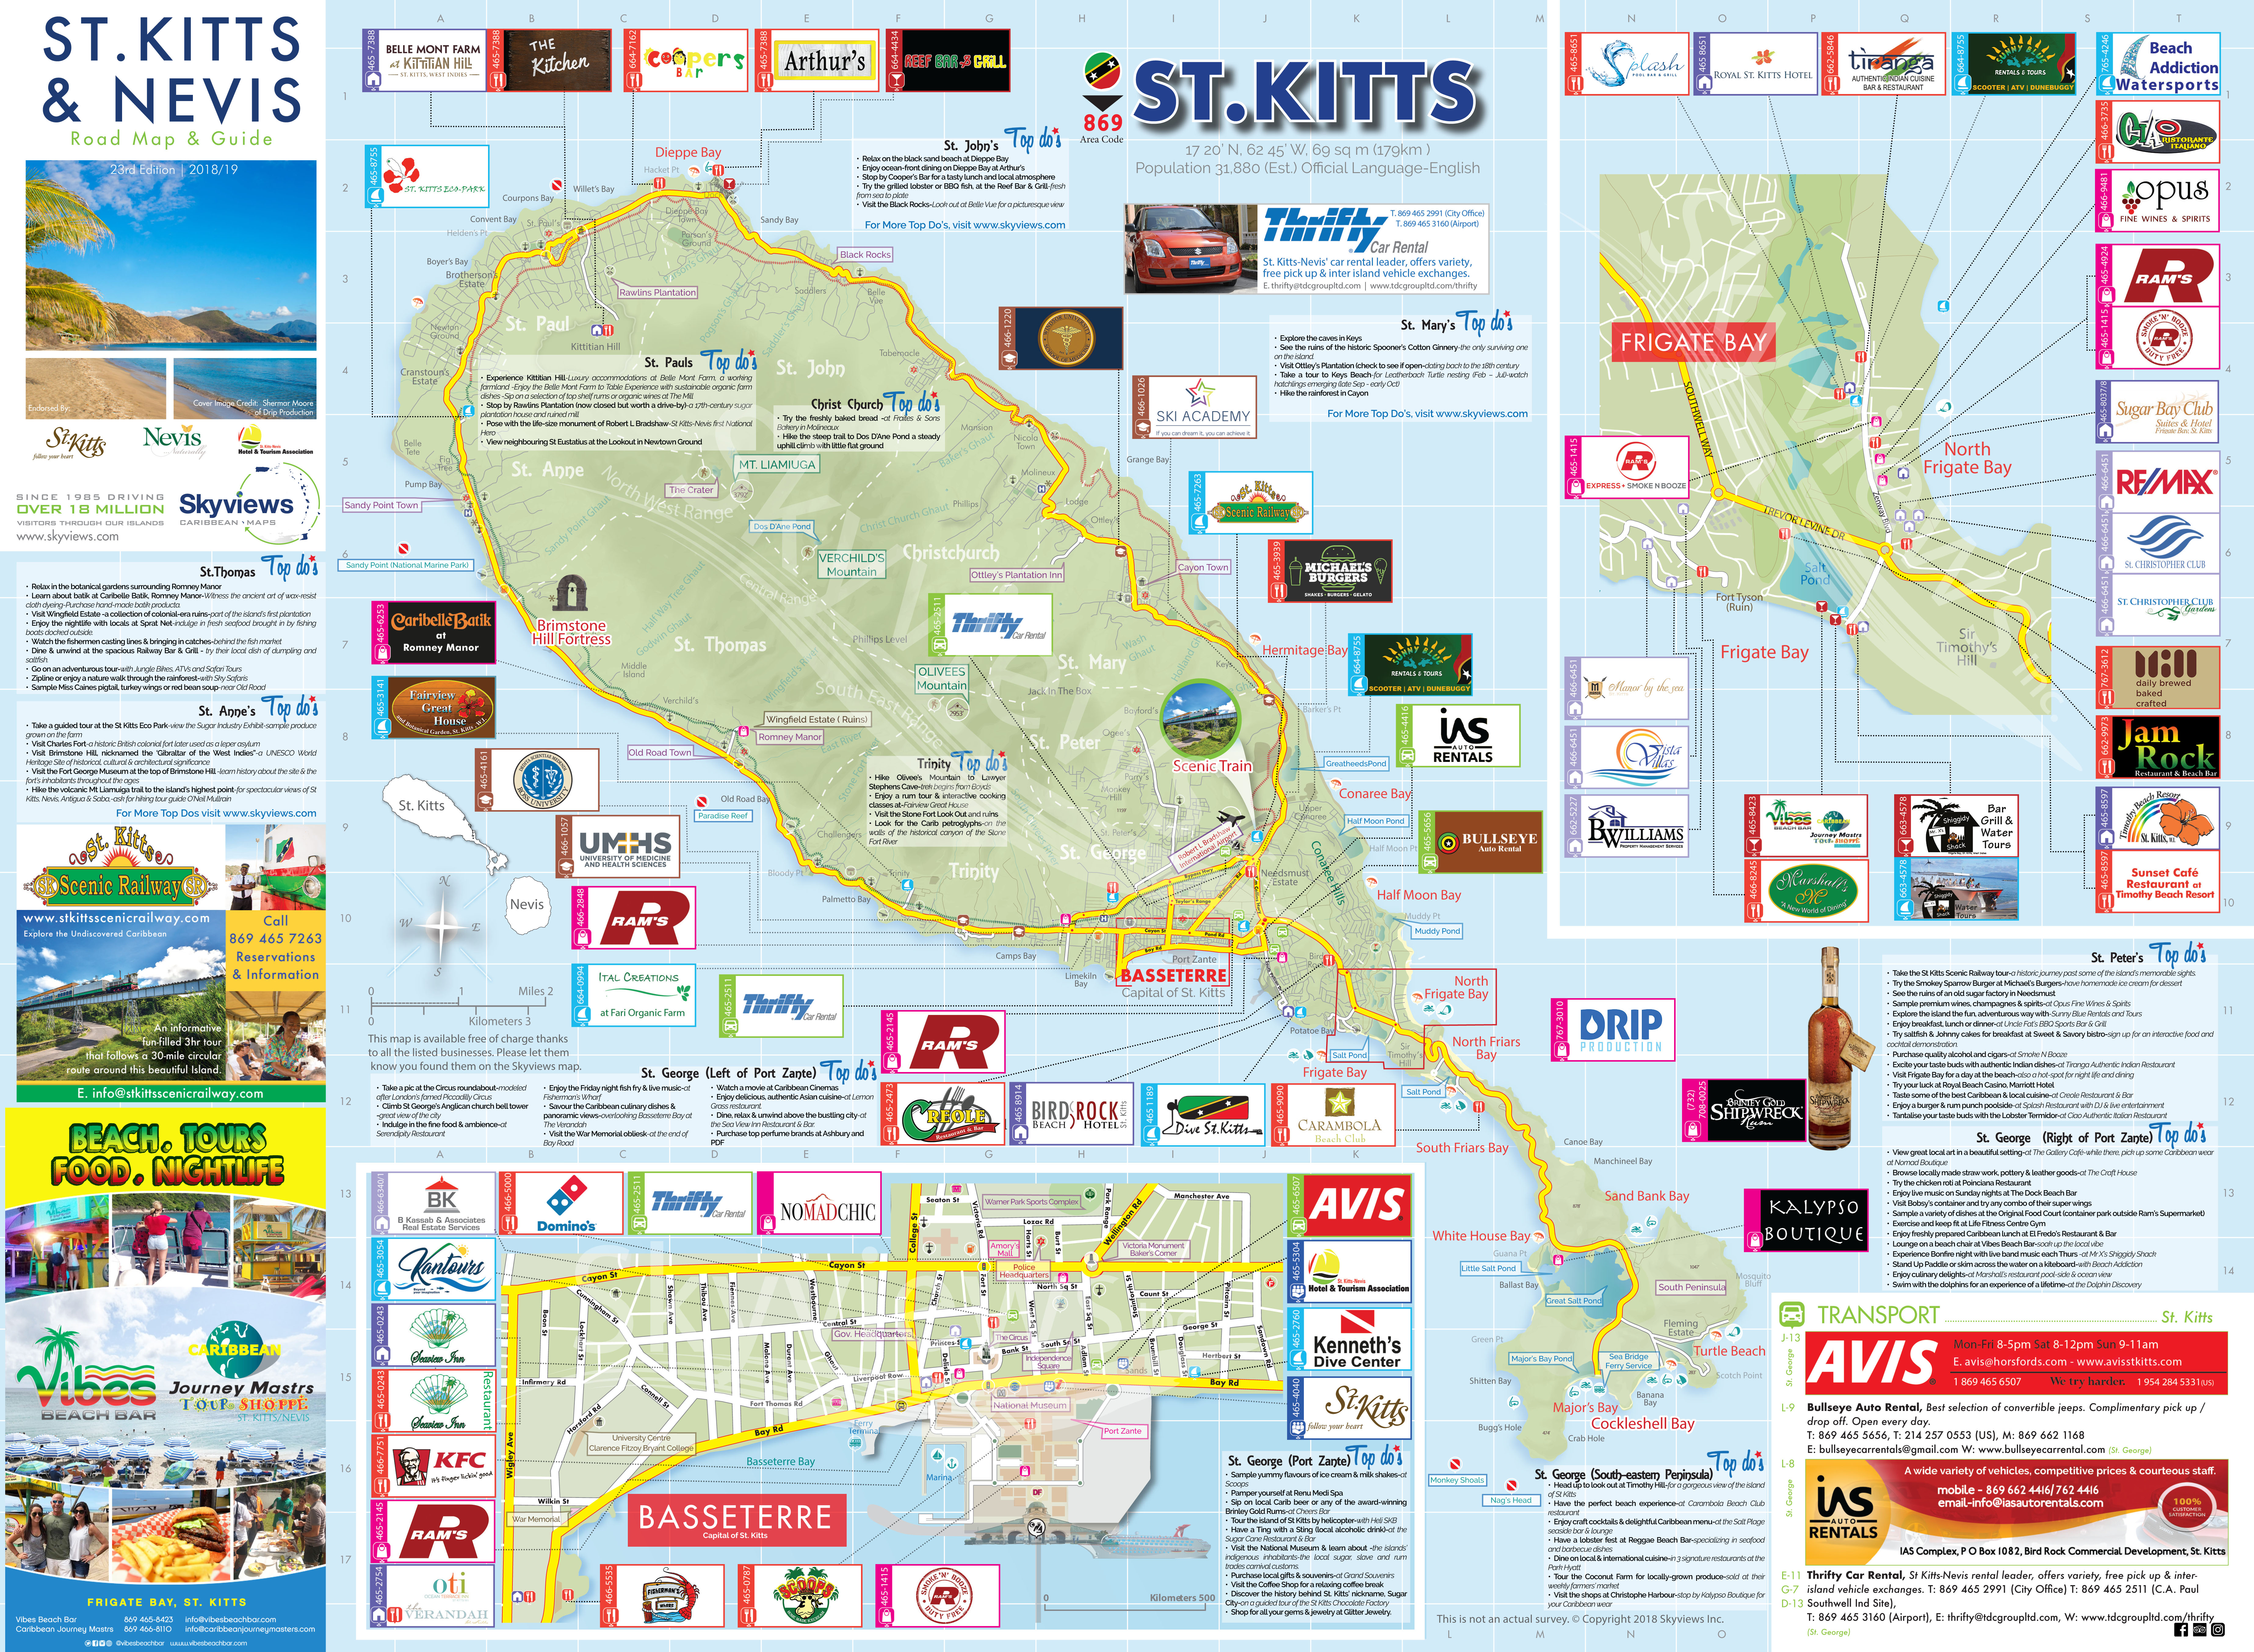 Map Of St Kitts Nevis Caribbean Islands Maps And Guides 2nd Judicial Circuit Historical Society Side